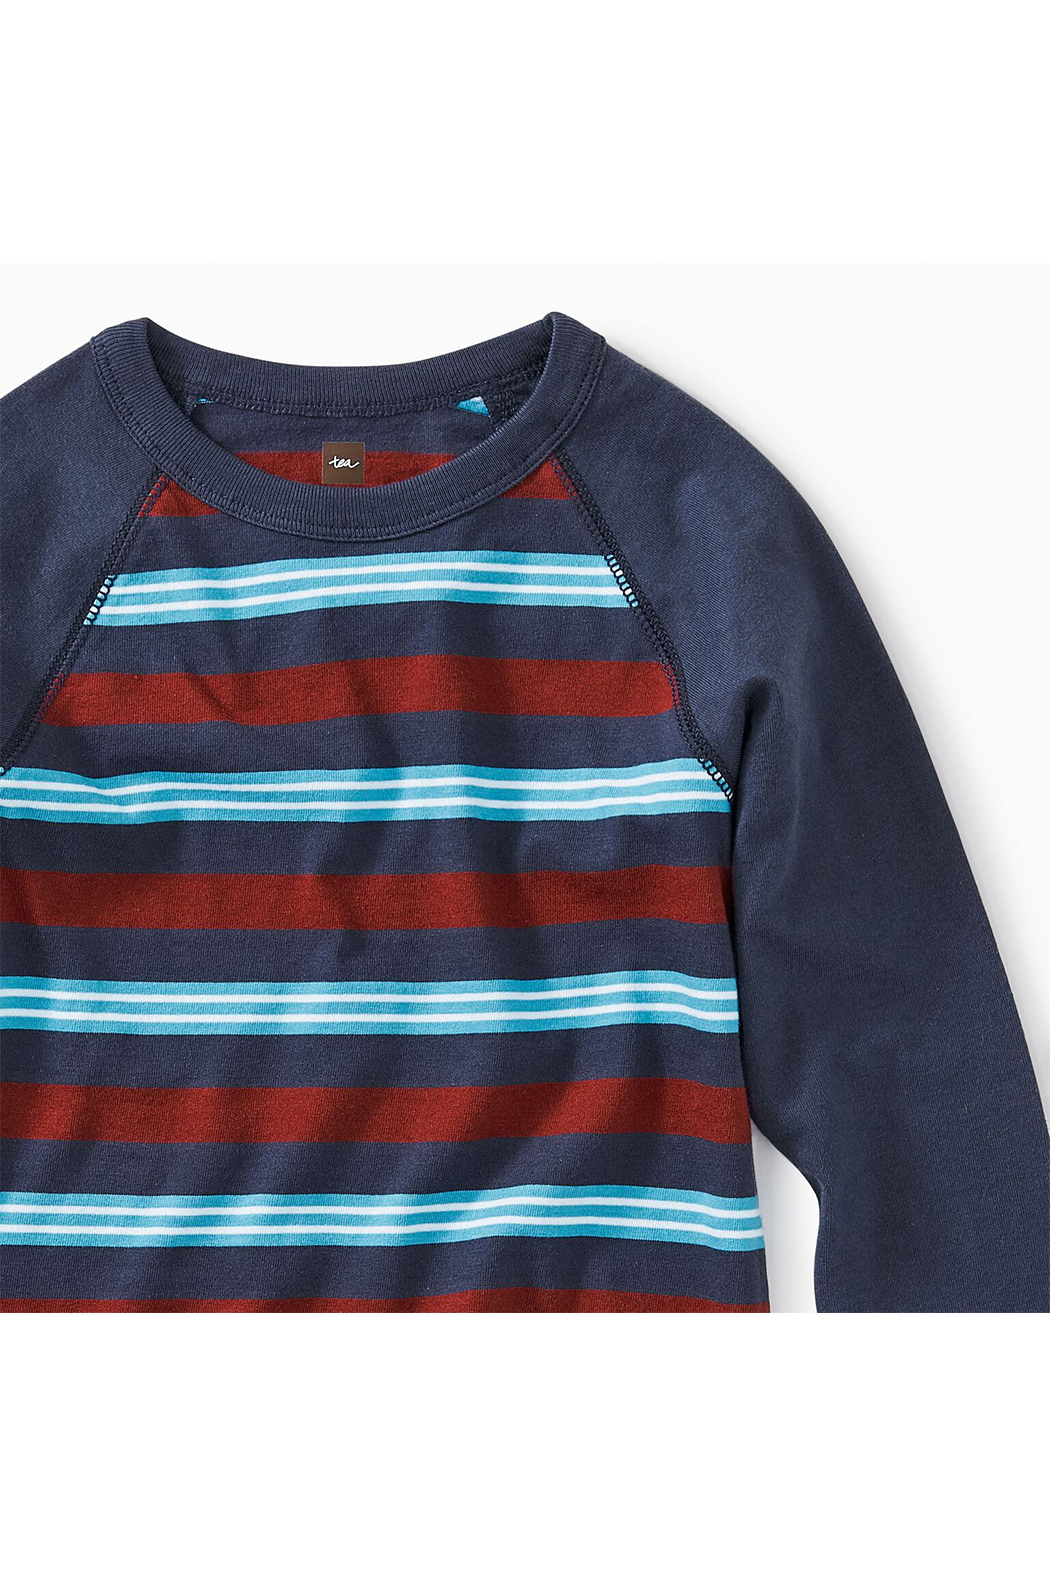 Tea Collection Striped Raglan Tee - Front Full Image